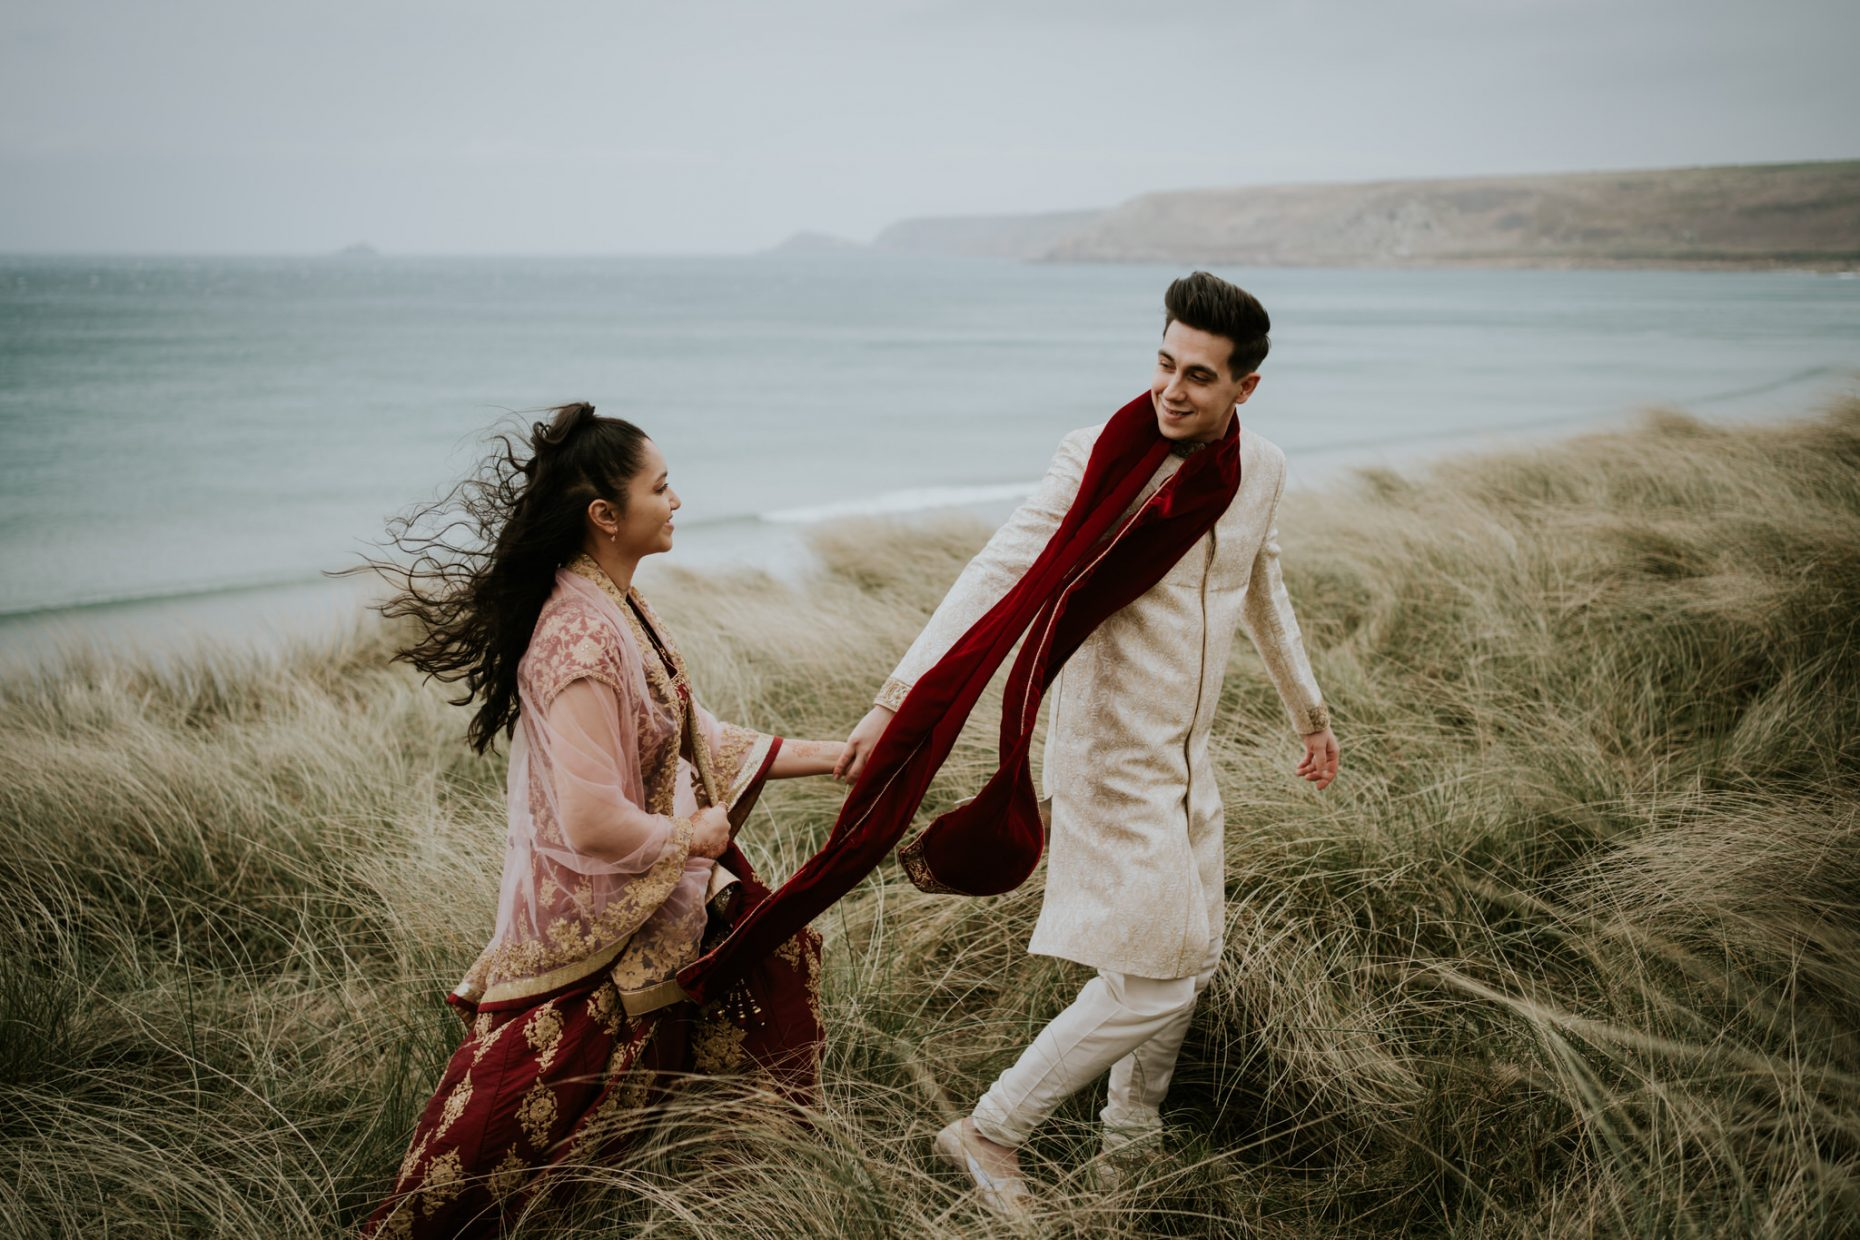 Bride and groom walk hand in hand in traditional Indian wedding clothes through the long grass in sanddunes